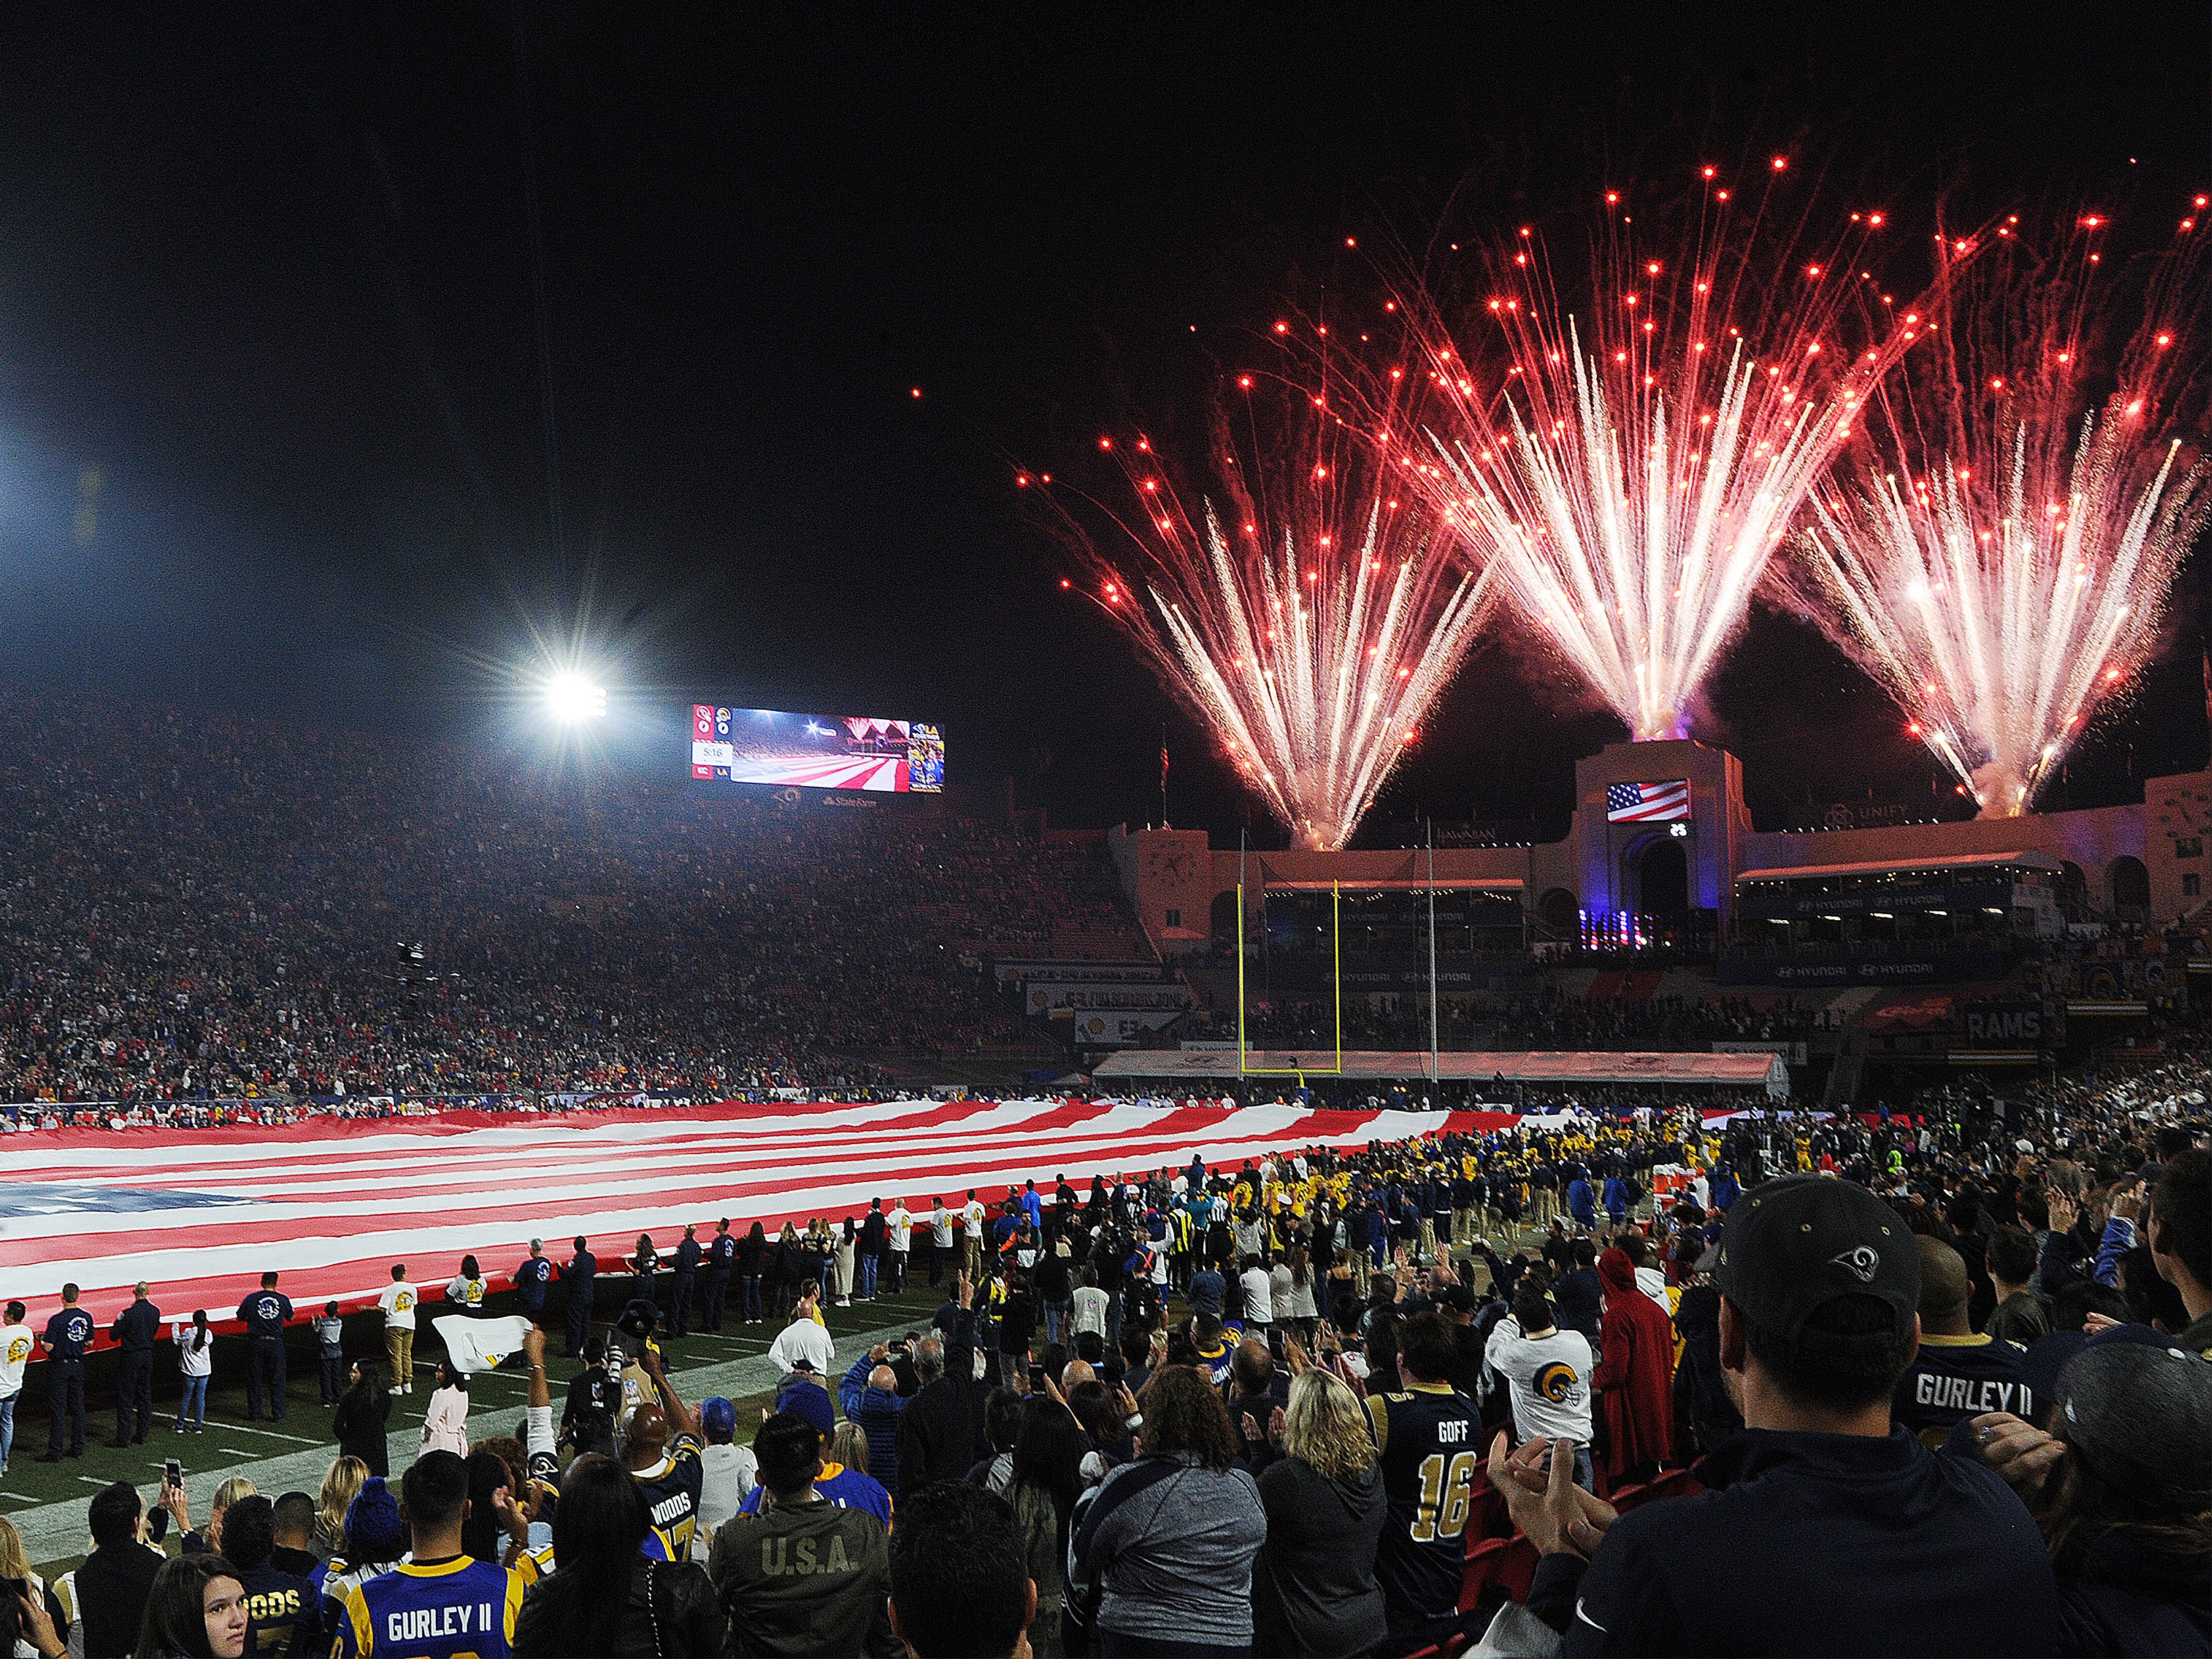 First responders hold the American flag during the national anthem before Monday night's game between the Rams and Chiefs at the Coliseum.